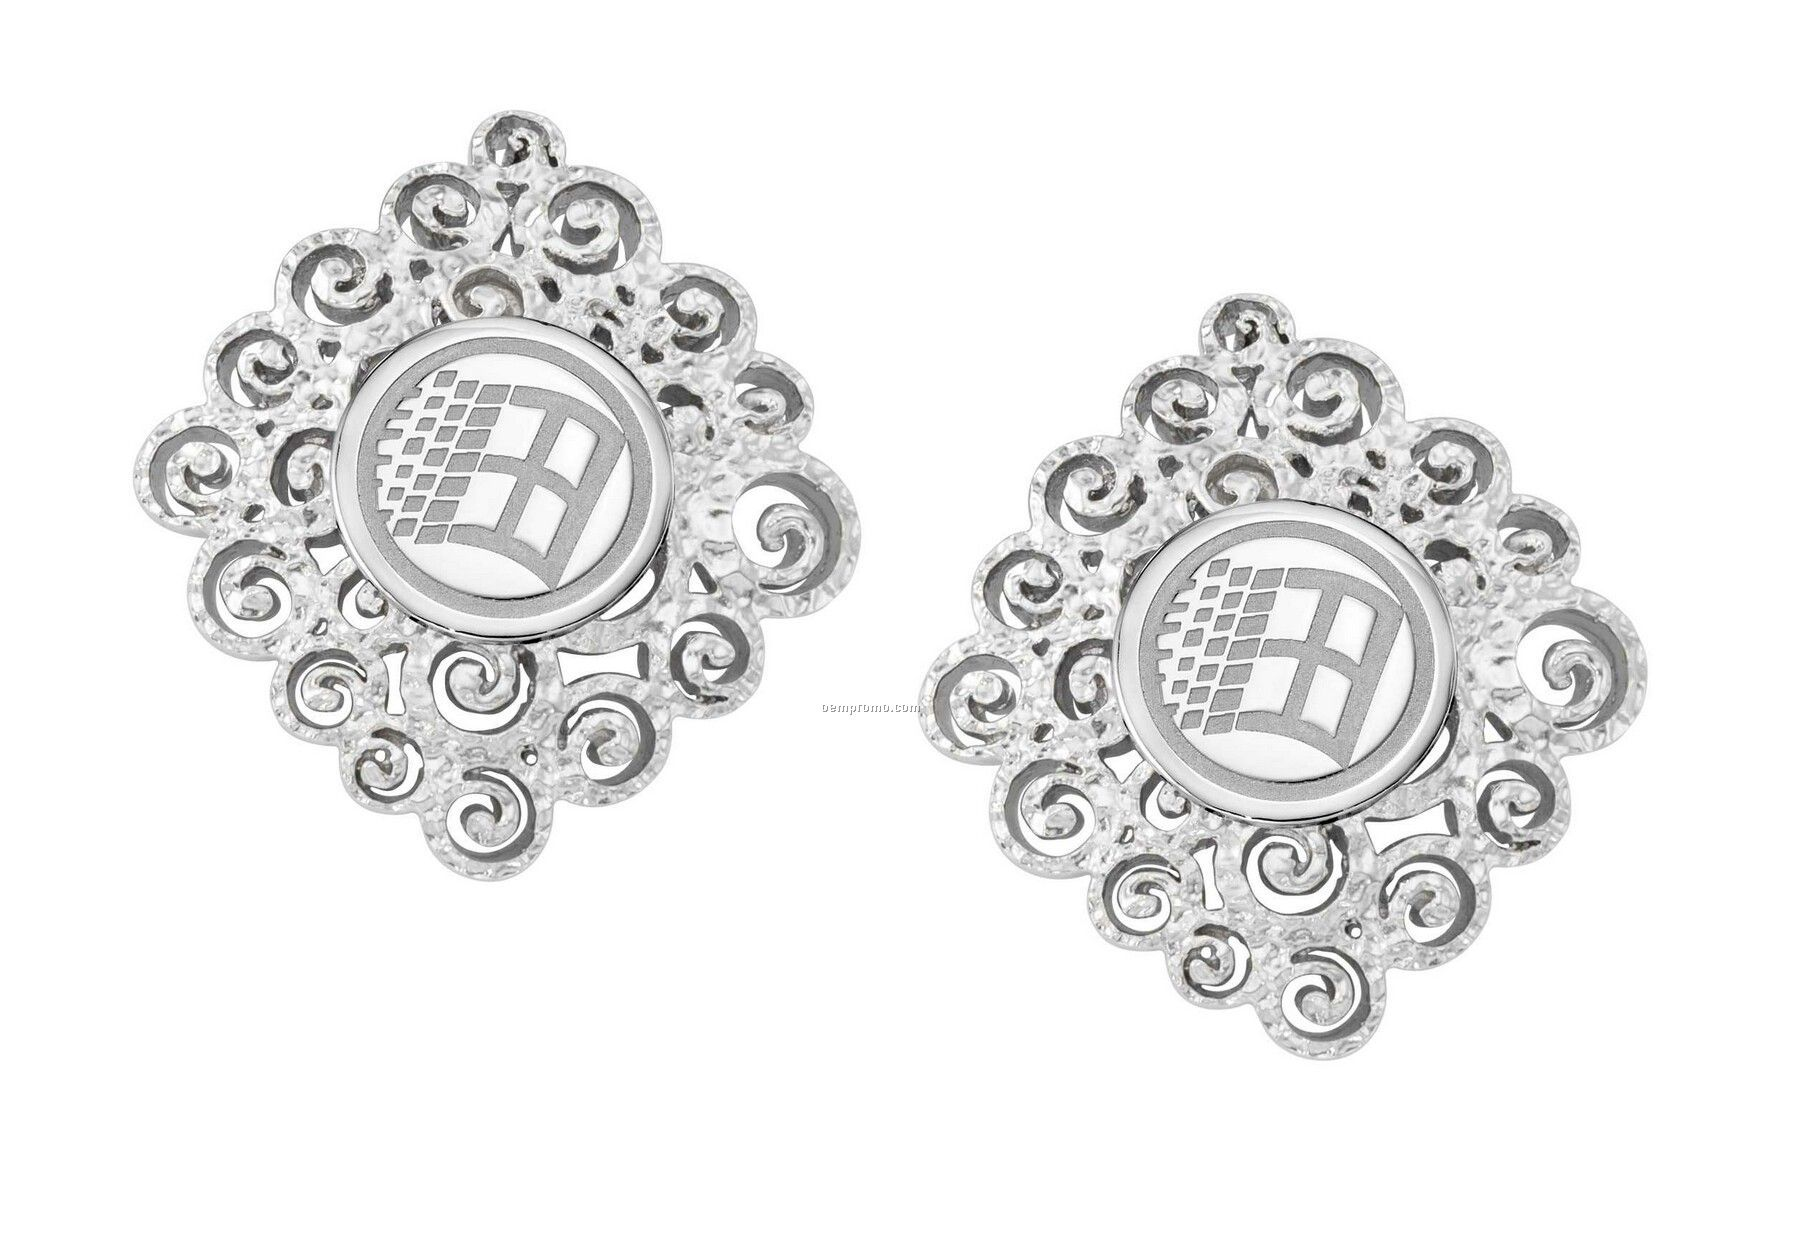 Ovations - Grandeur Silver Plated Earrings - Round Area For Laser Engraving